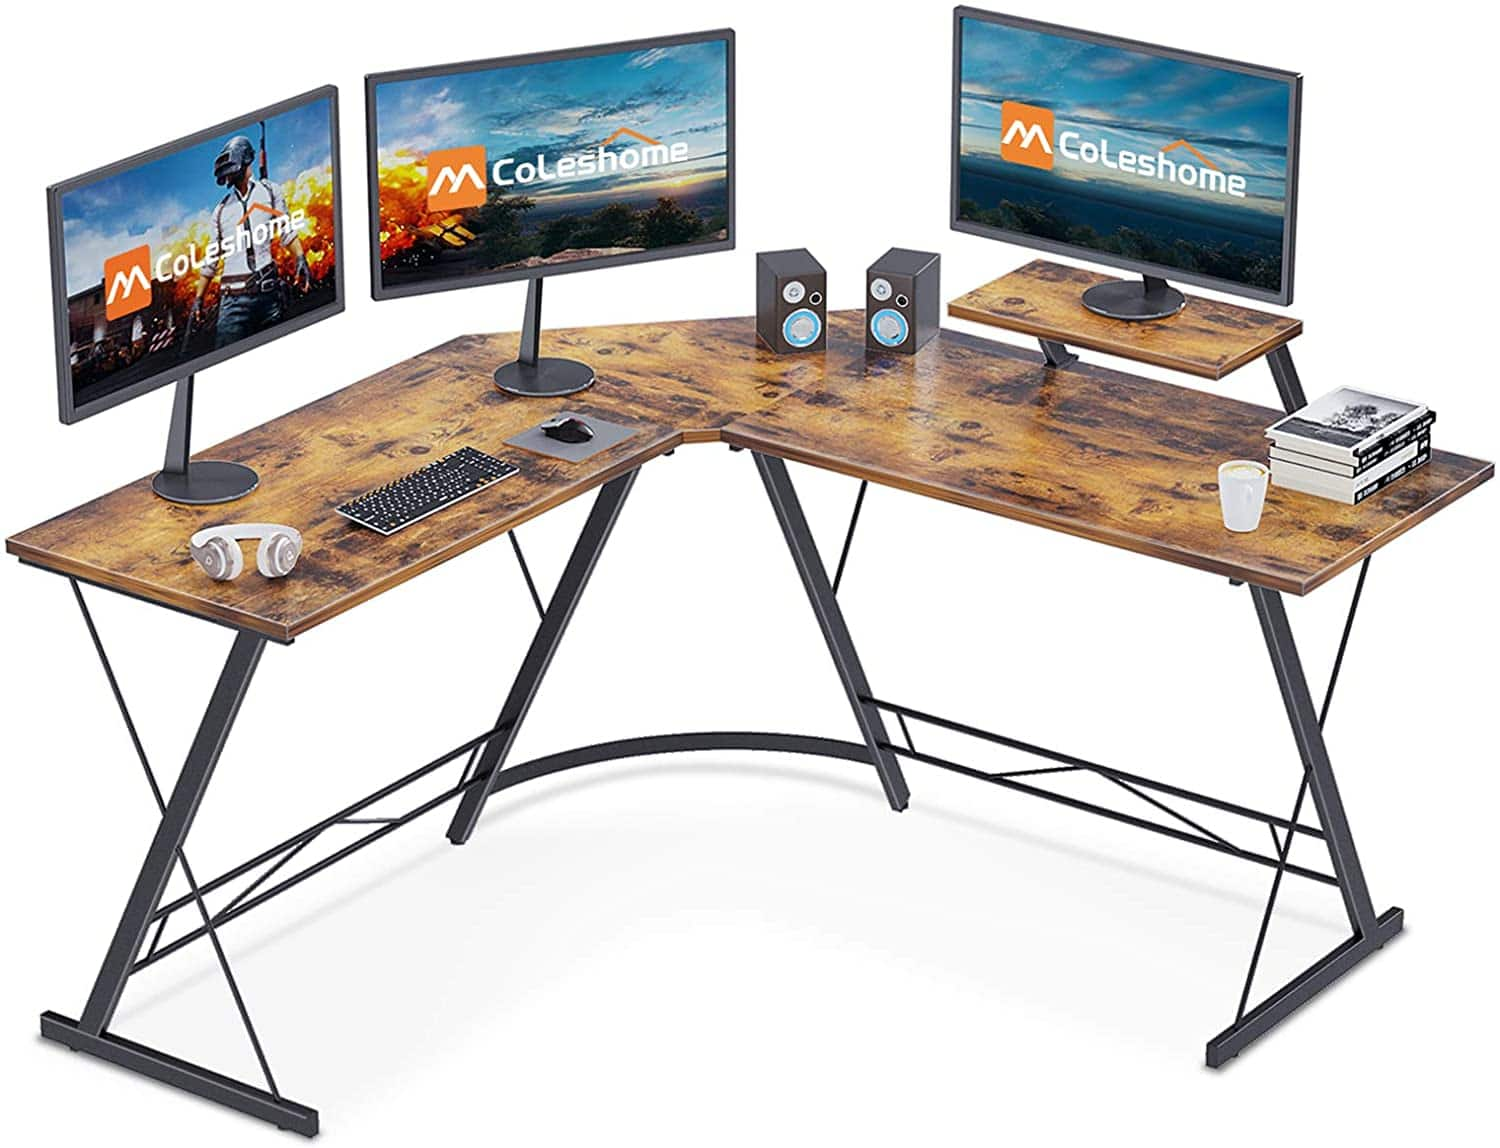 Coleshome L Shaped Desk / Gaming Computer Desk with Monitor Stand $49.99+Free Shipping